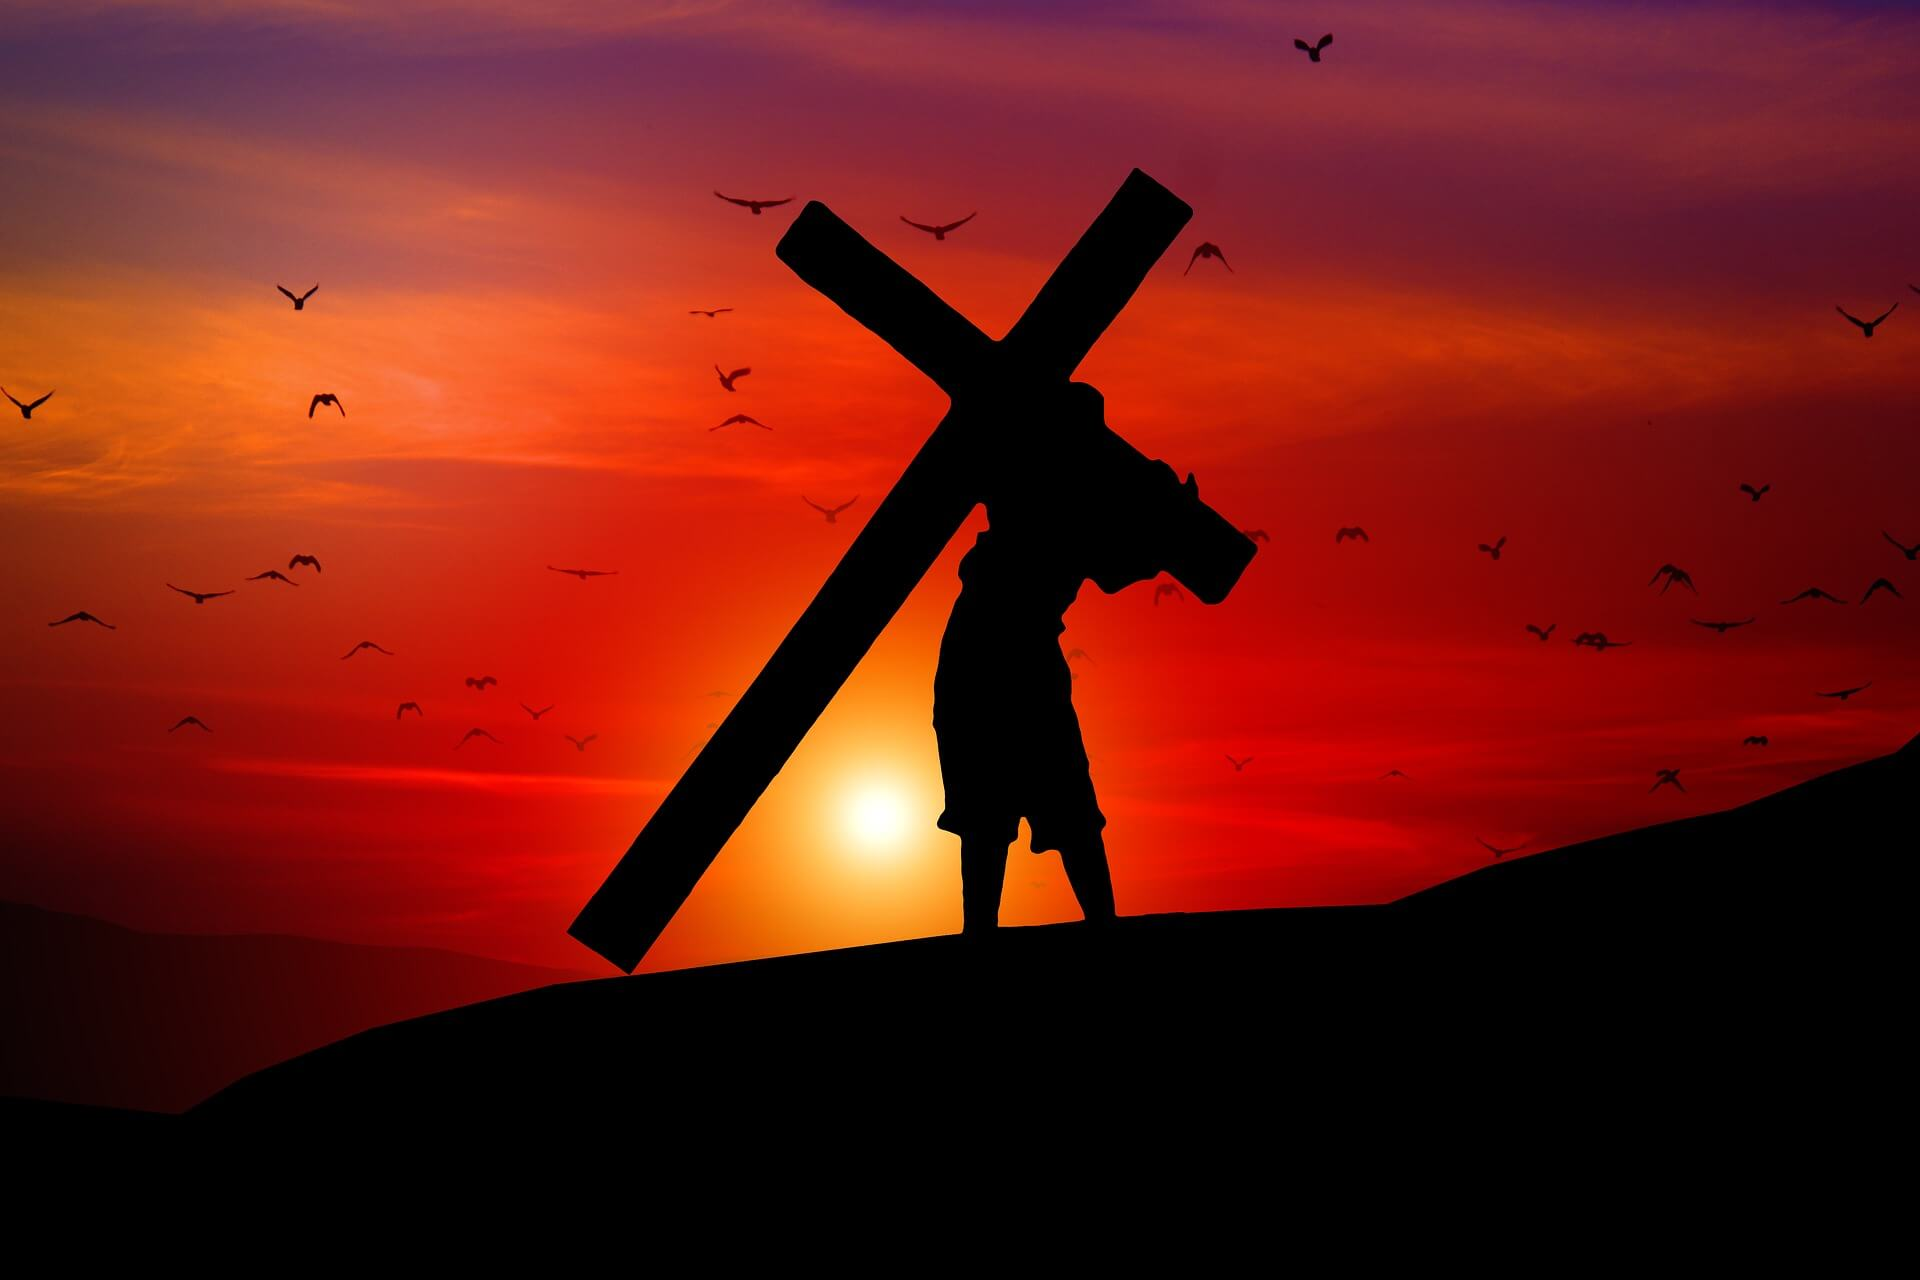 Jesus died on the cross for man's salvation